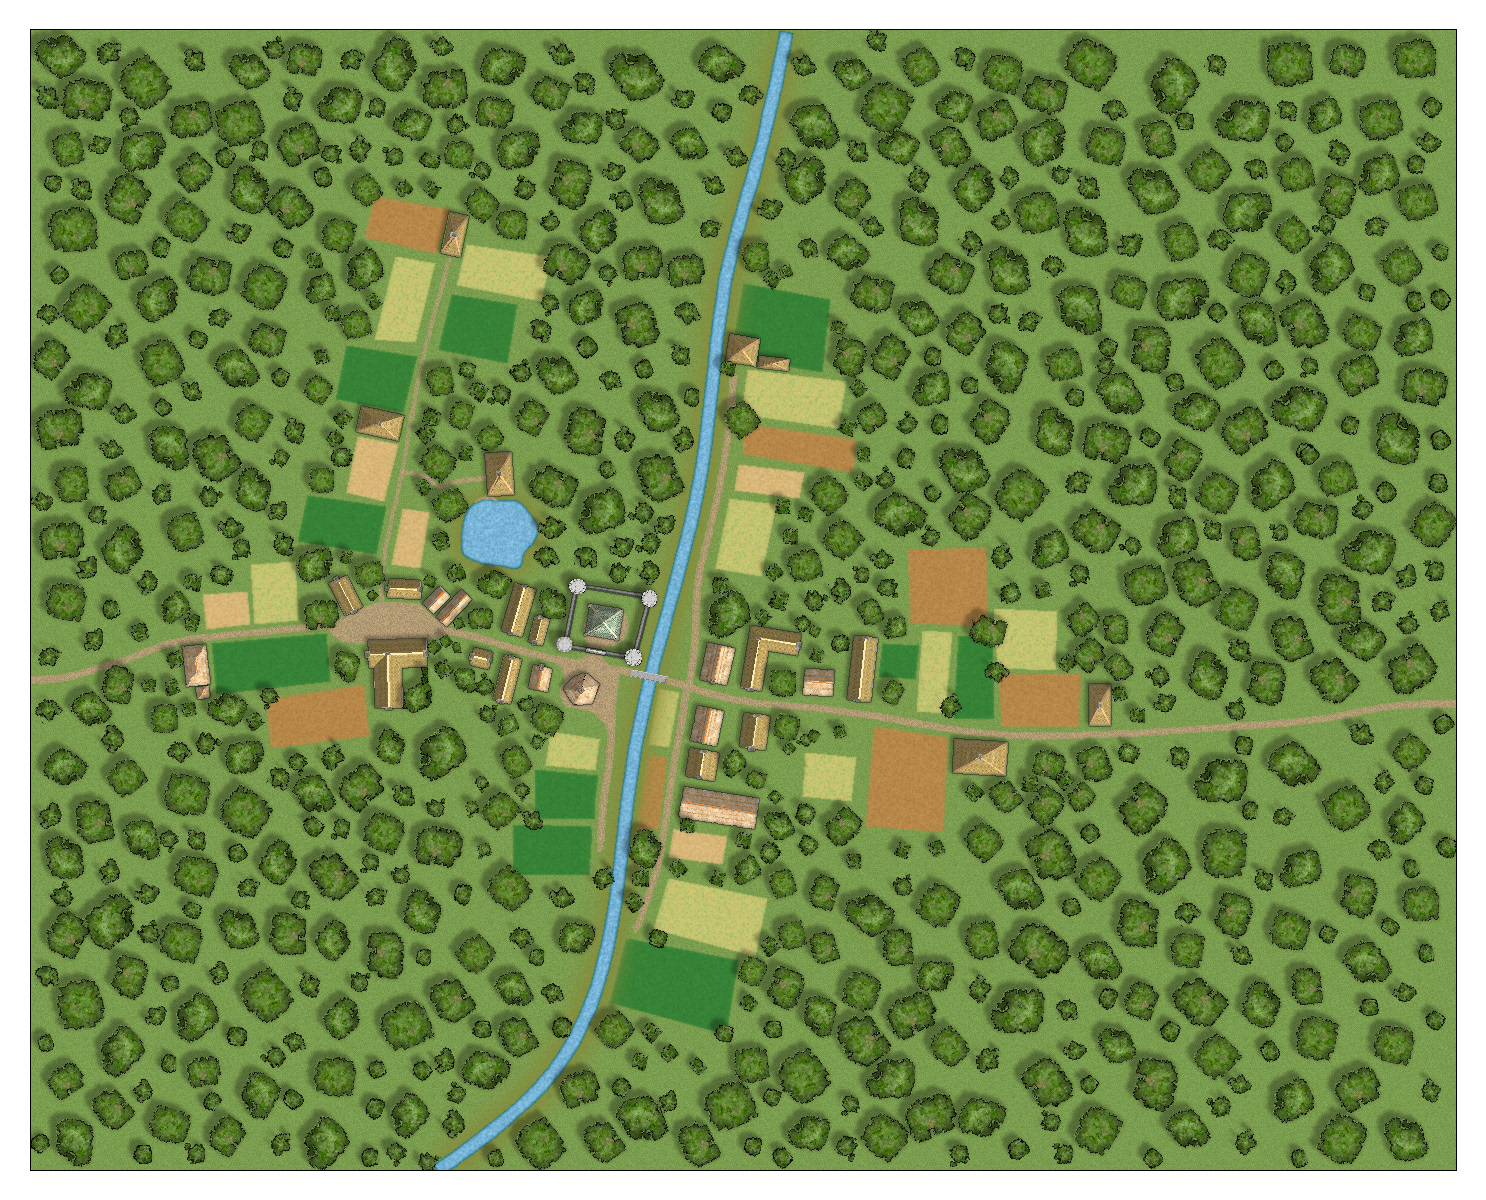 Test Village Treeshttp://forum.cartographersguild.com/album.php?albumid=193&attachmentid=21649